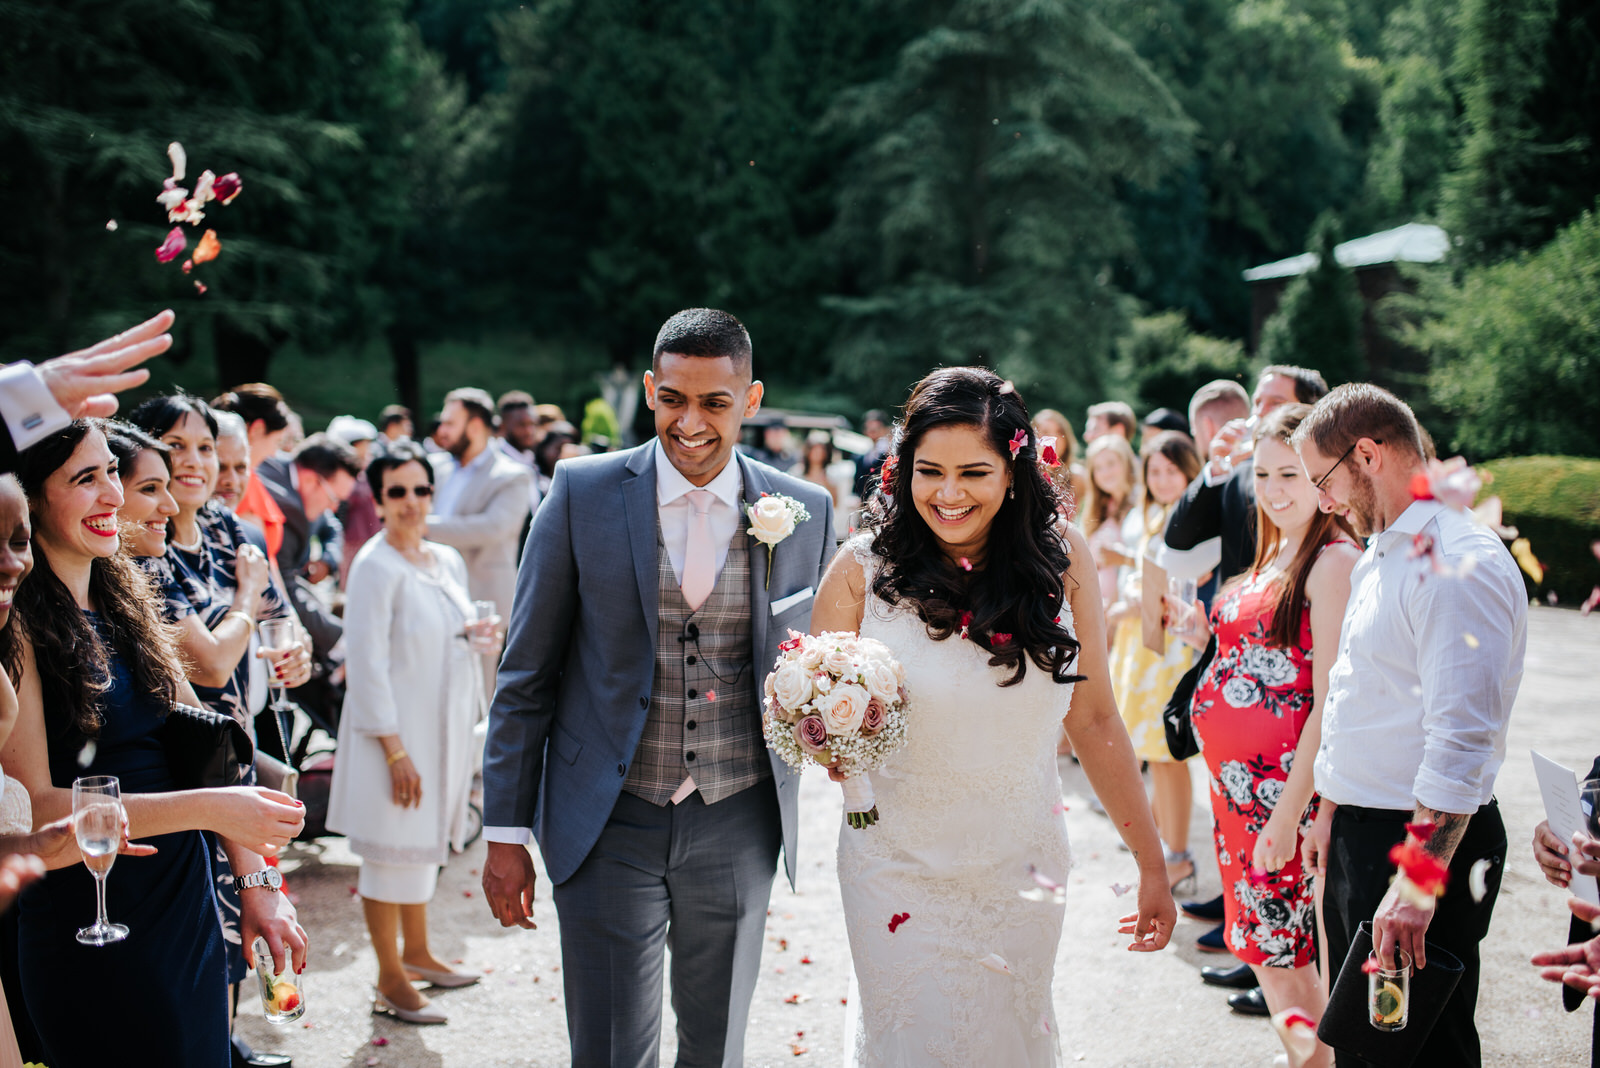 Bride and groom walking down tunnel of guests at Woldingham Scho